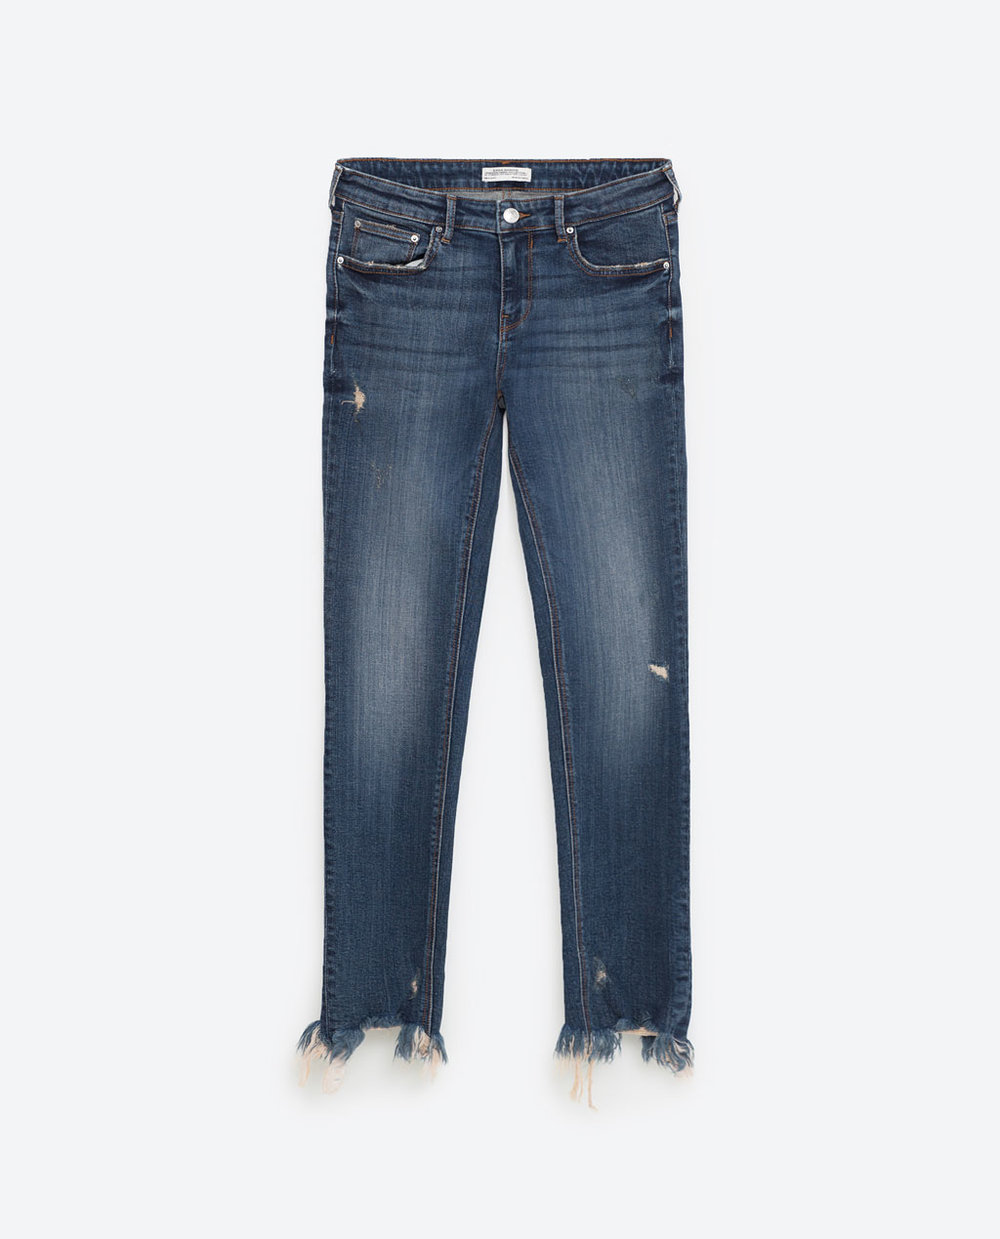 The jeans in the video were thrifted and DIY-ed, but if you wanted to save the trouble, I hear Zara's hopping on the distressed denim hems.